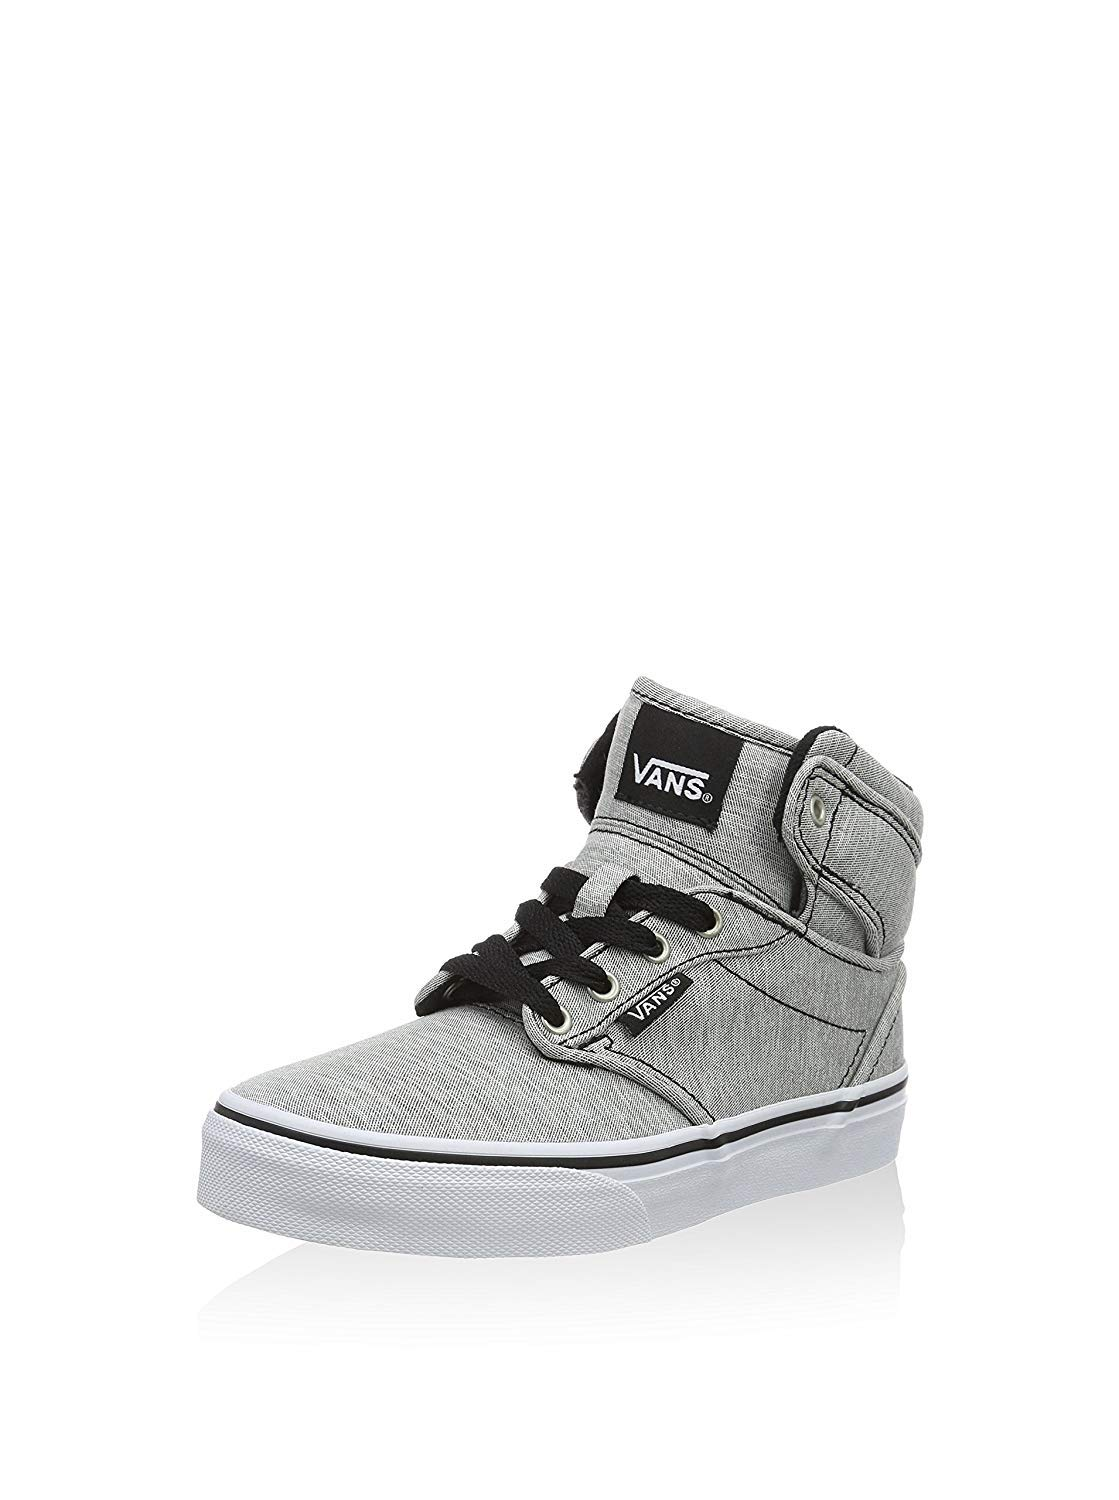 Vans Youth Atwood Hi Skateboarding Shoe (Washed Jersey) Gray/White (US 10.5 Y)